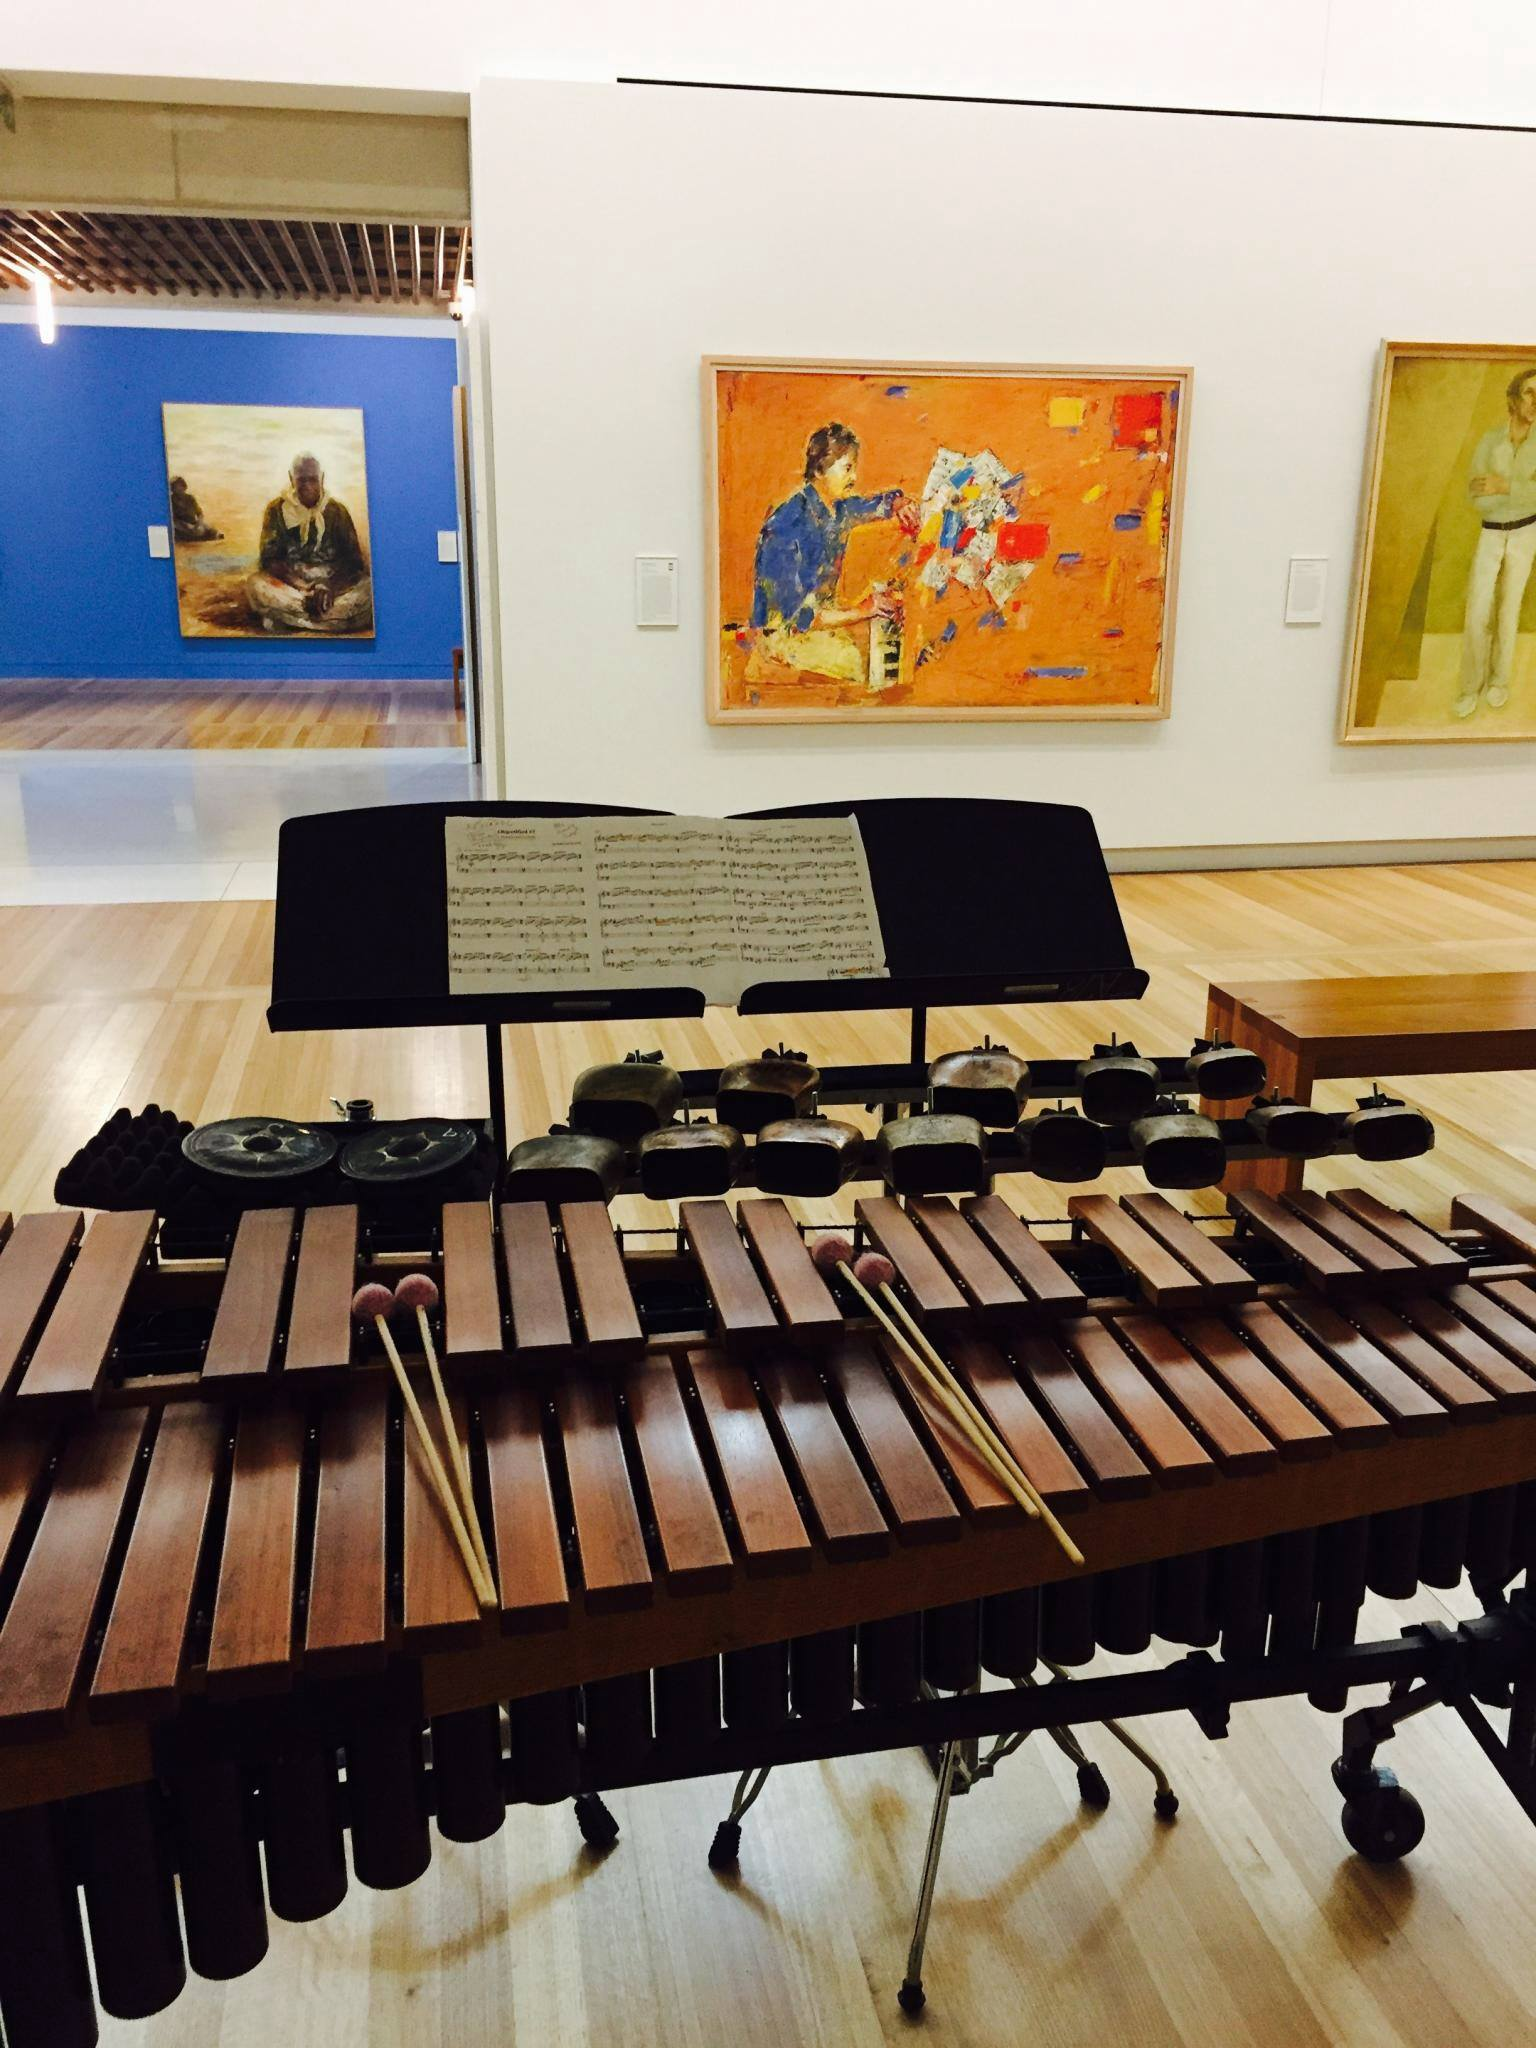 Marimba and Cowbells set up for Claire Edwardes' performance of Glocken Blocken' at the National Portrait Gallery, Canberra, 2017.